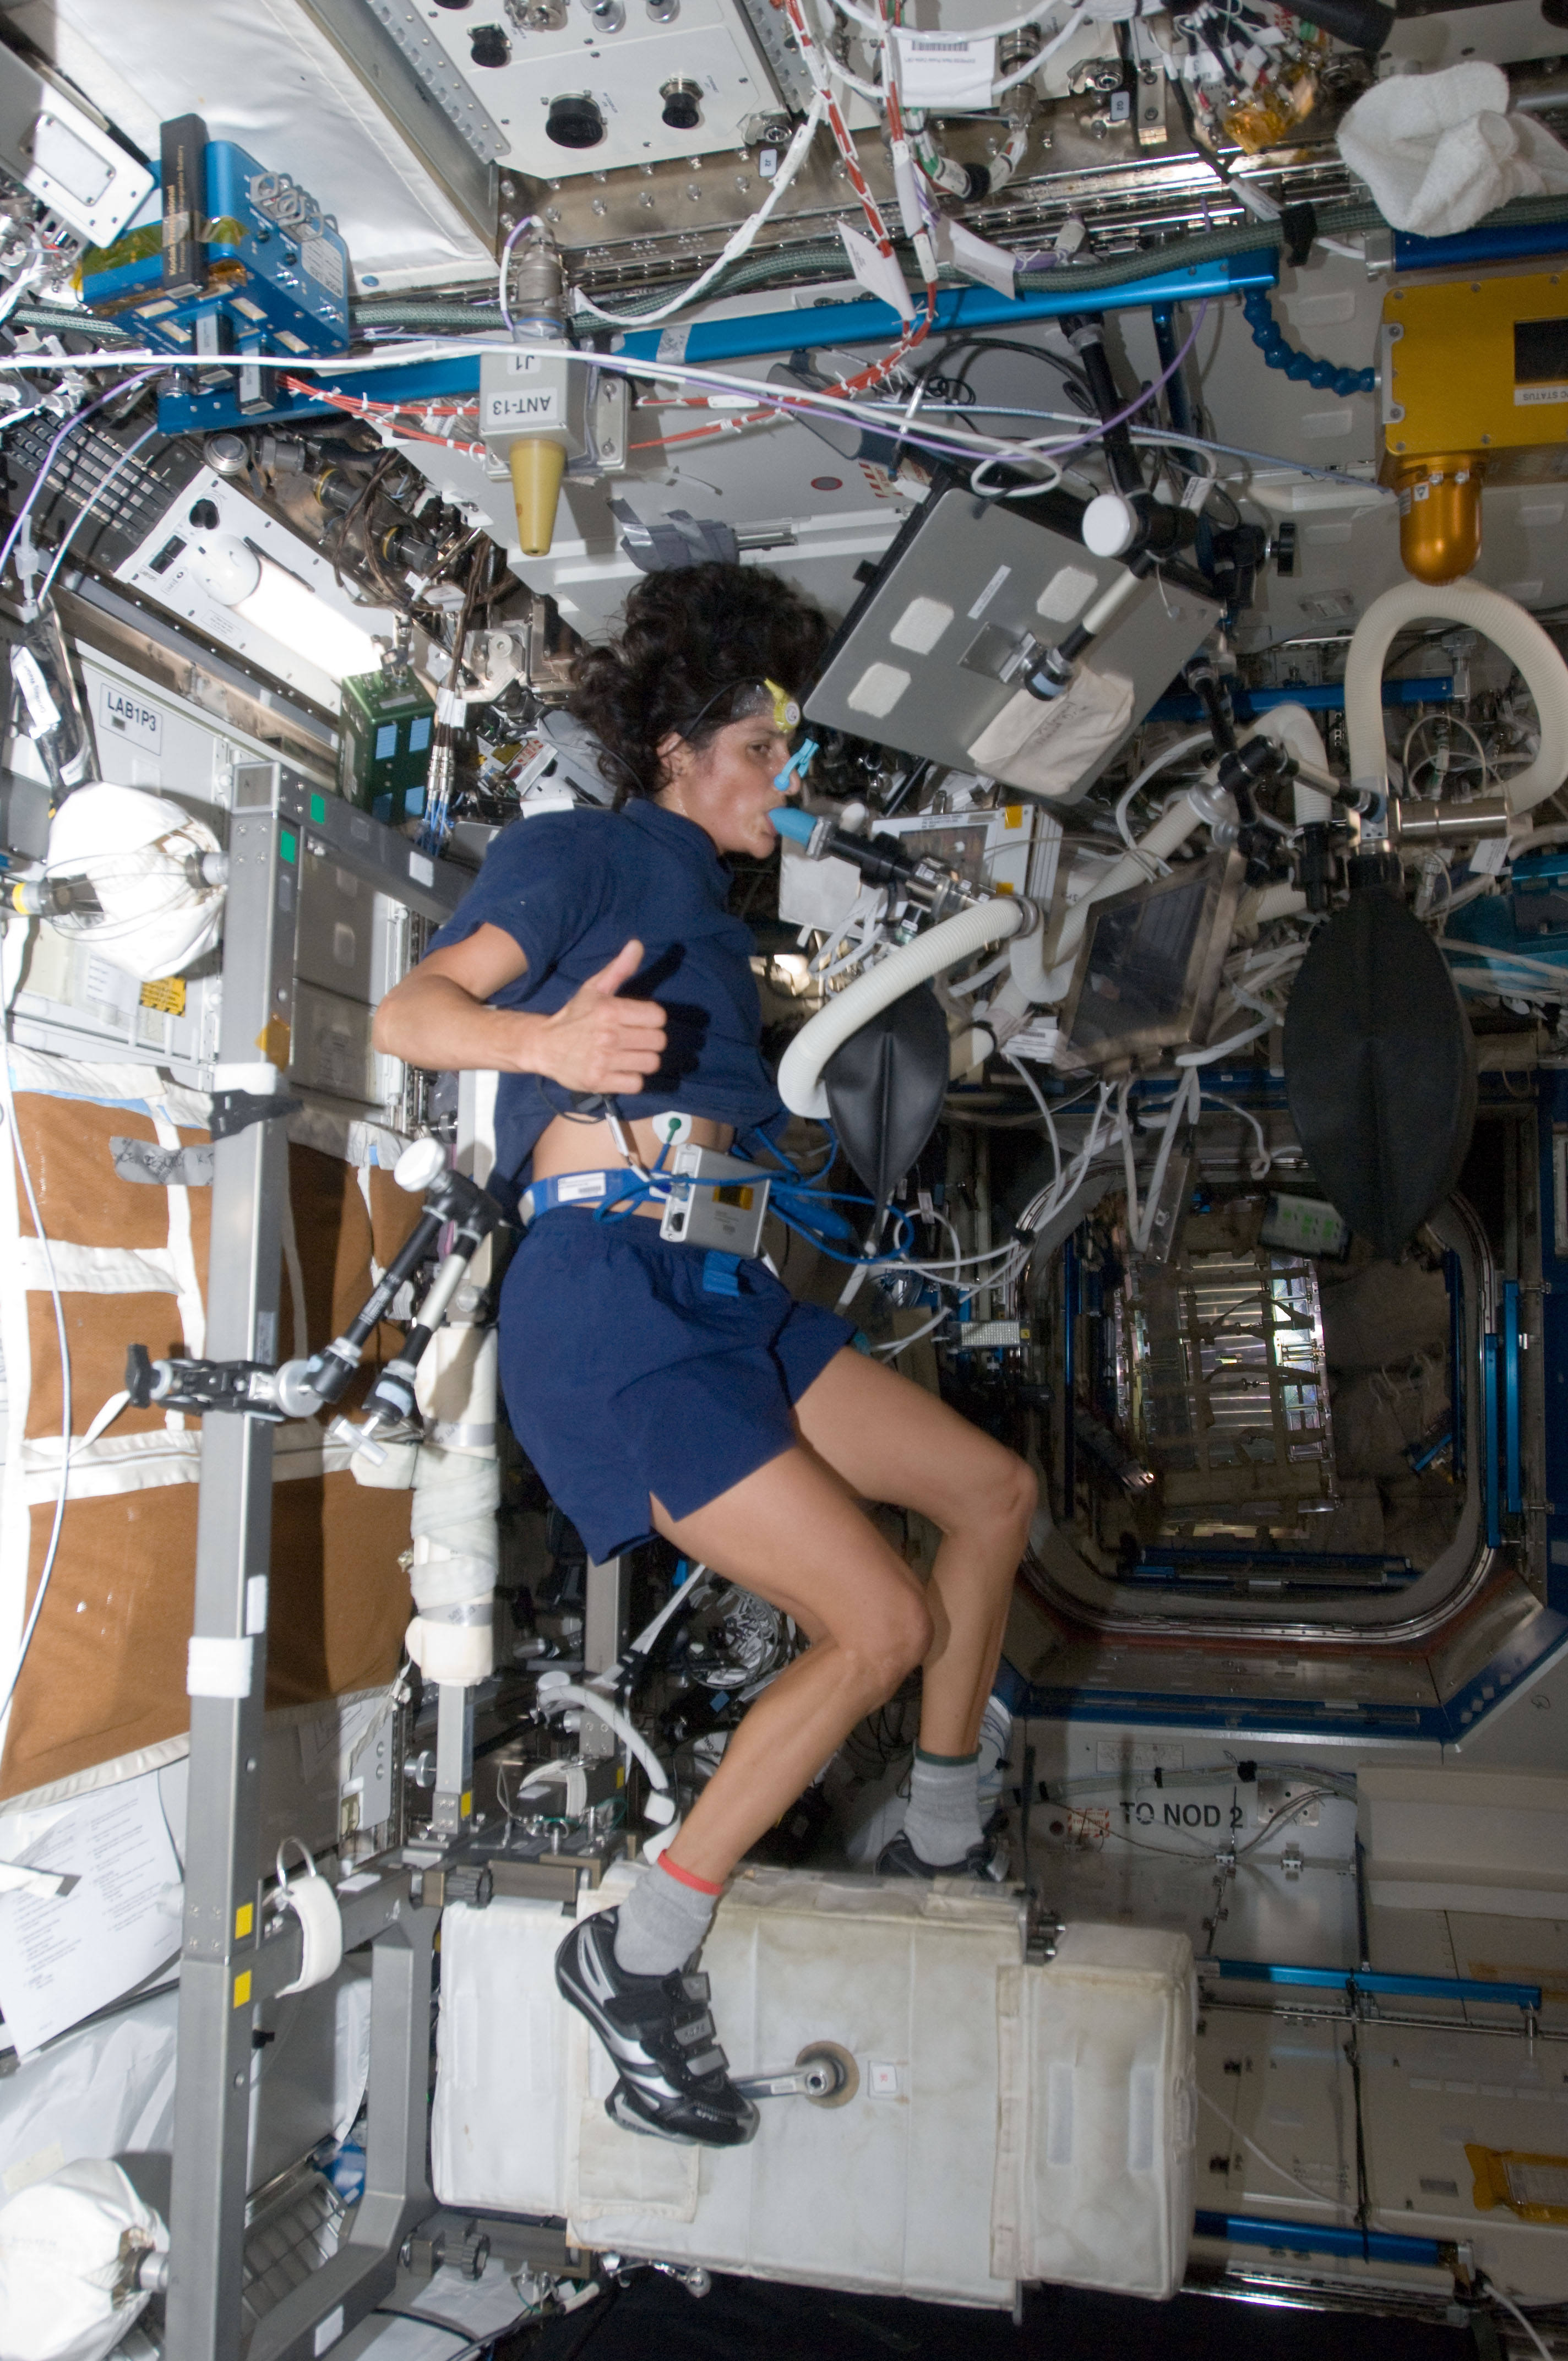 NASA astronaut Sunita Williams, Expedition 32 flight engineer, performs a VO2max test while using the Cycle Ergometer with Vibration Isolation System (CEVIS) in the Destiny laboratory.